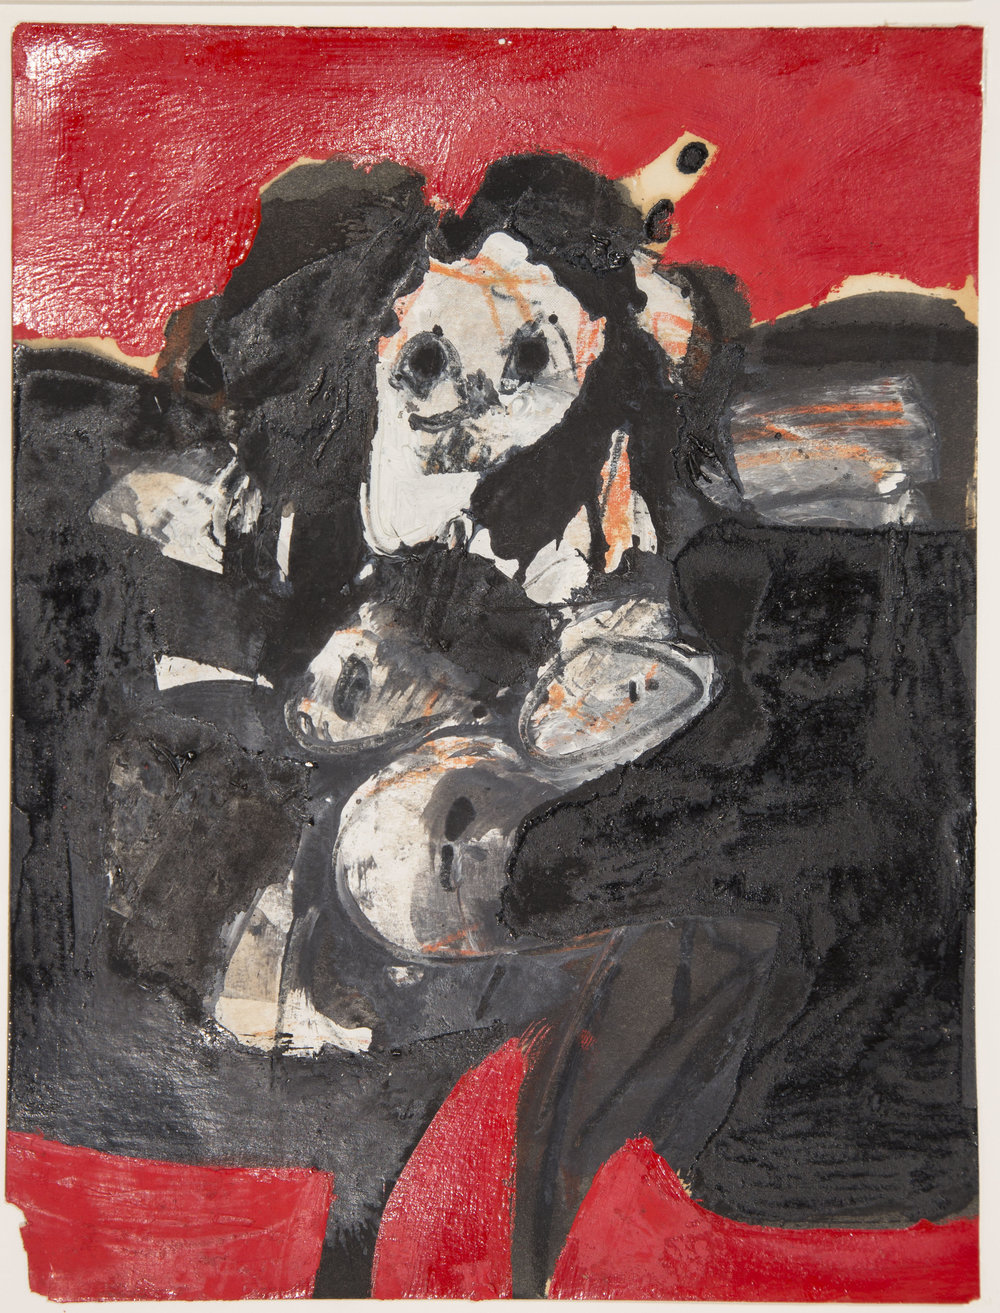 Willem de Kooning (1904-1997)  Untitled , no date mixed media on paper Gift of Barbara & Peter Falotico, 2013.18